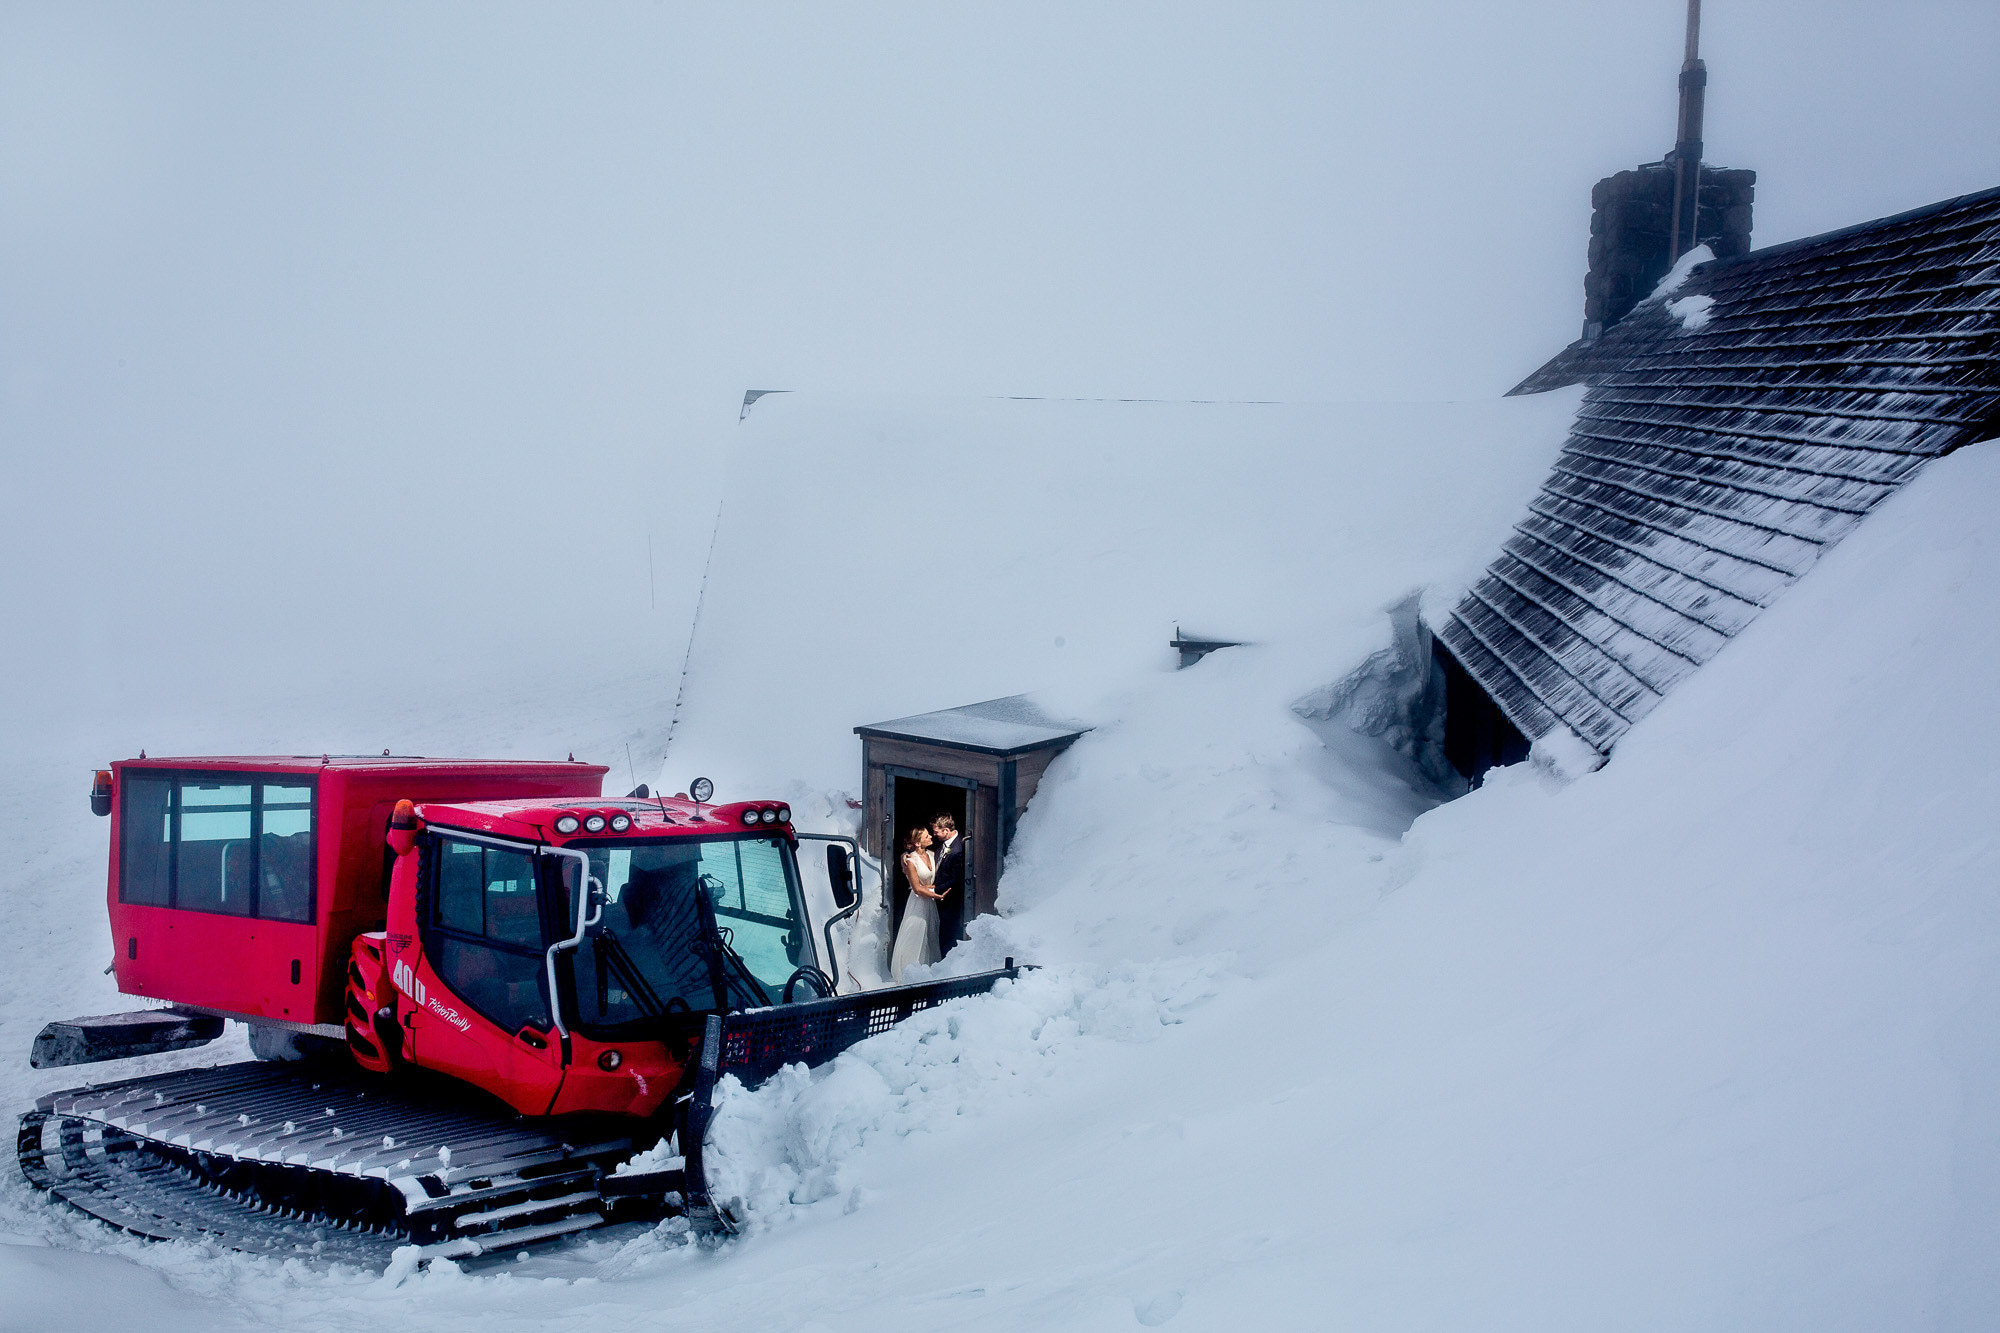 Snow plow rescue for couple at ski lodge - photo by Jos Studios